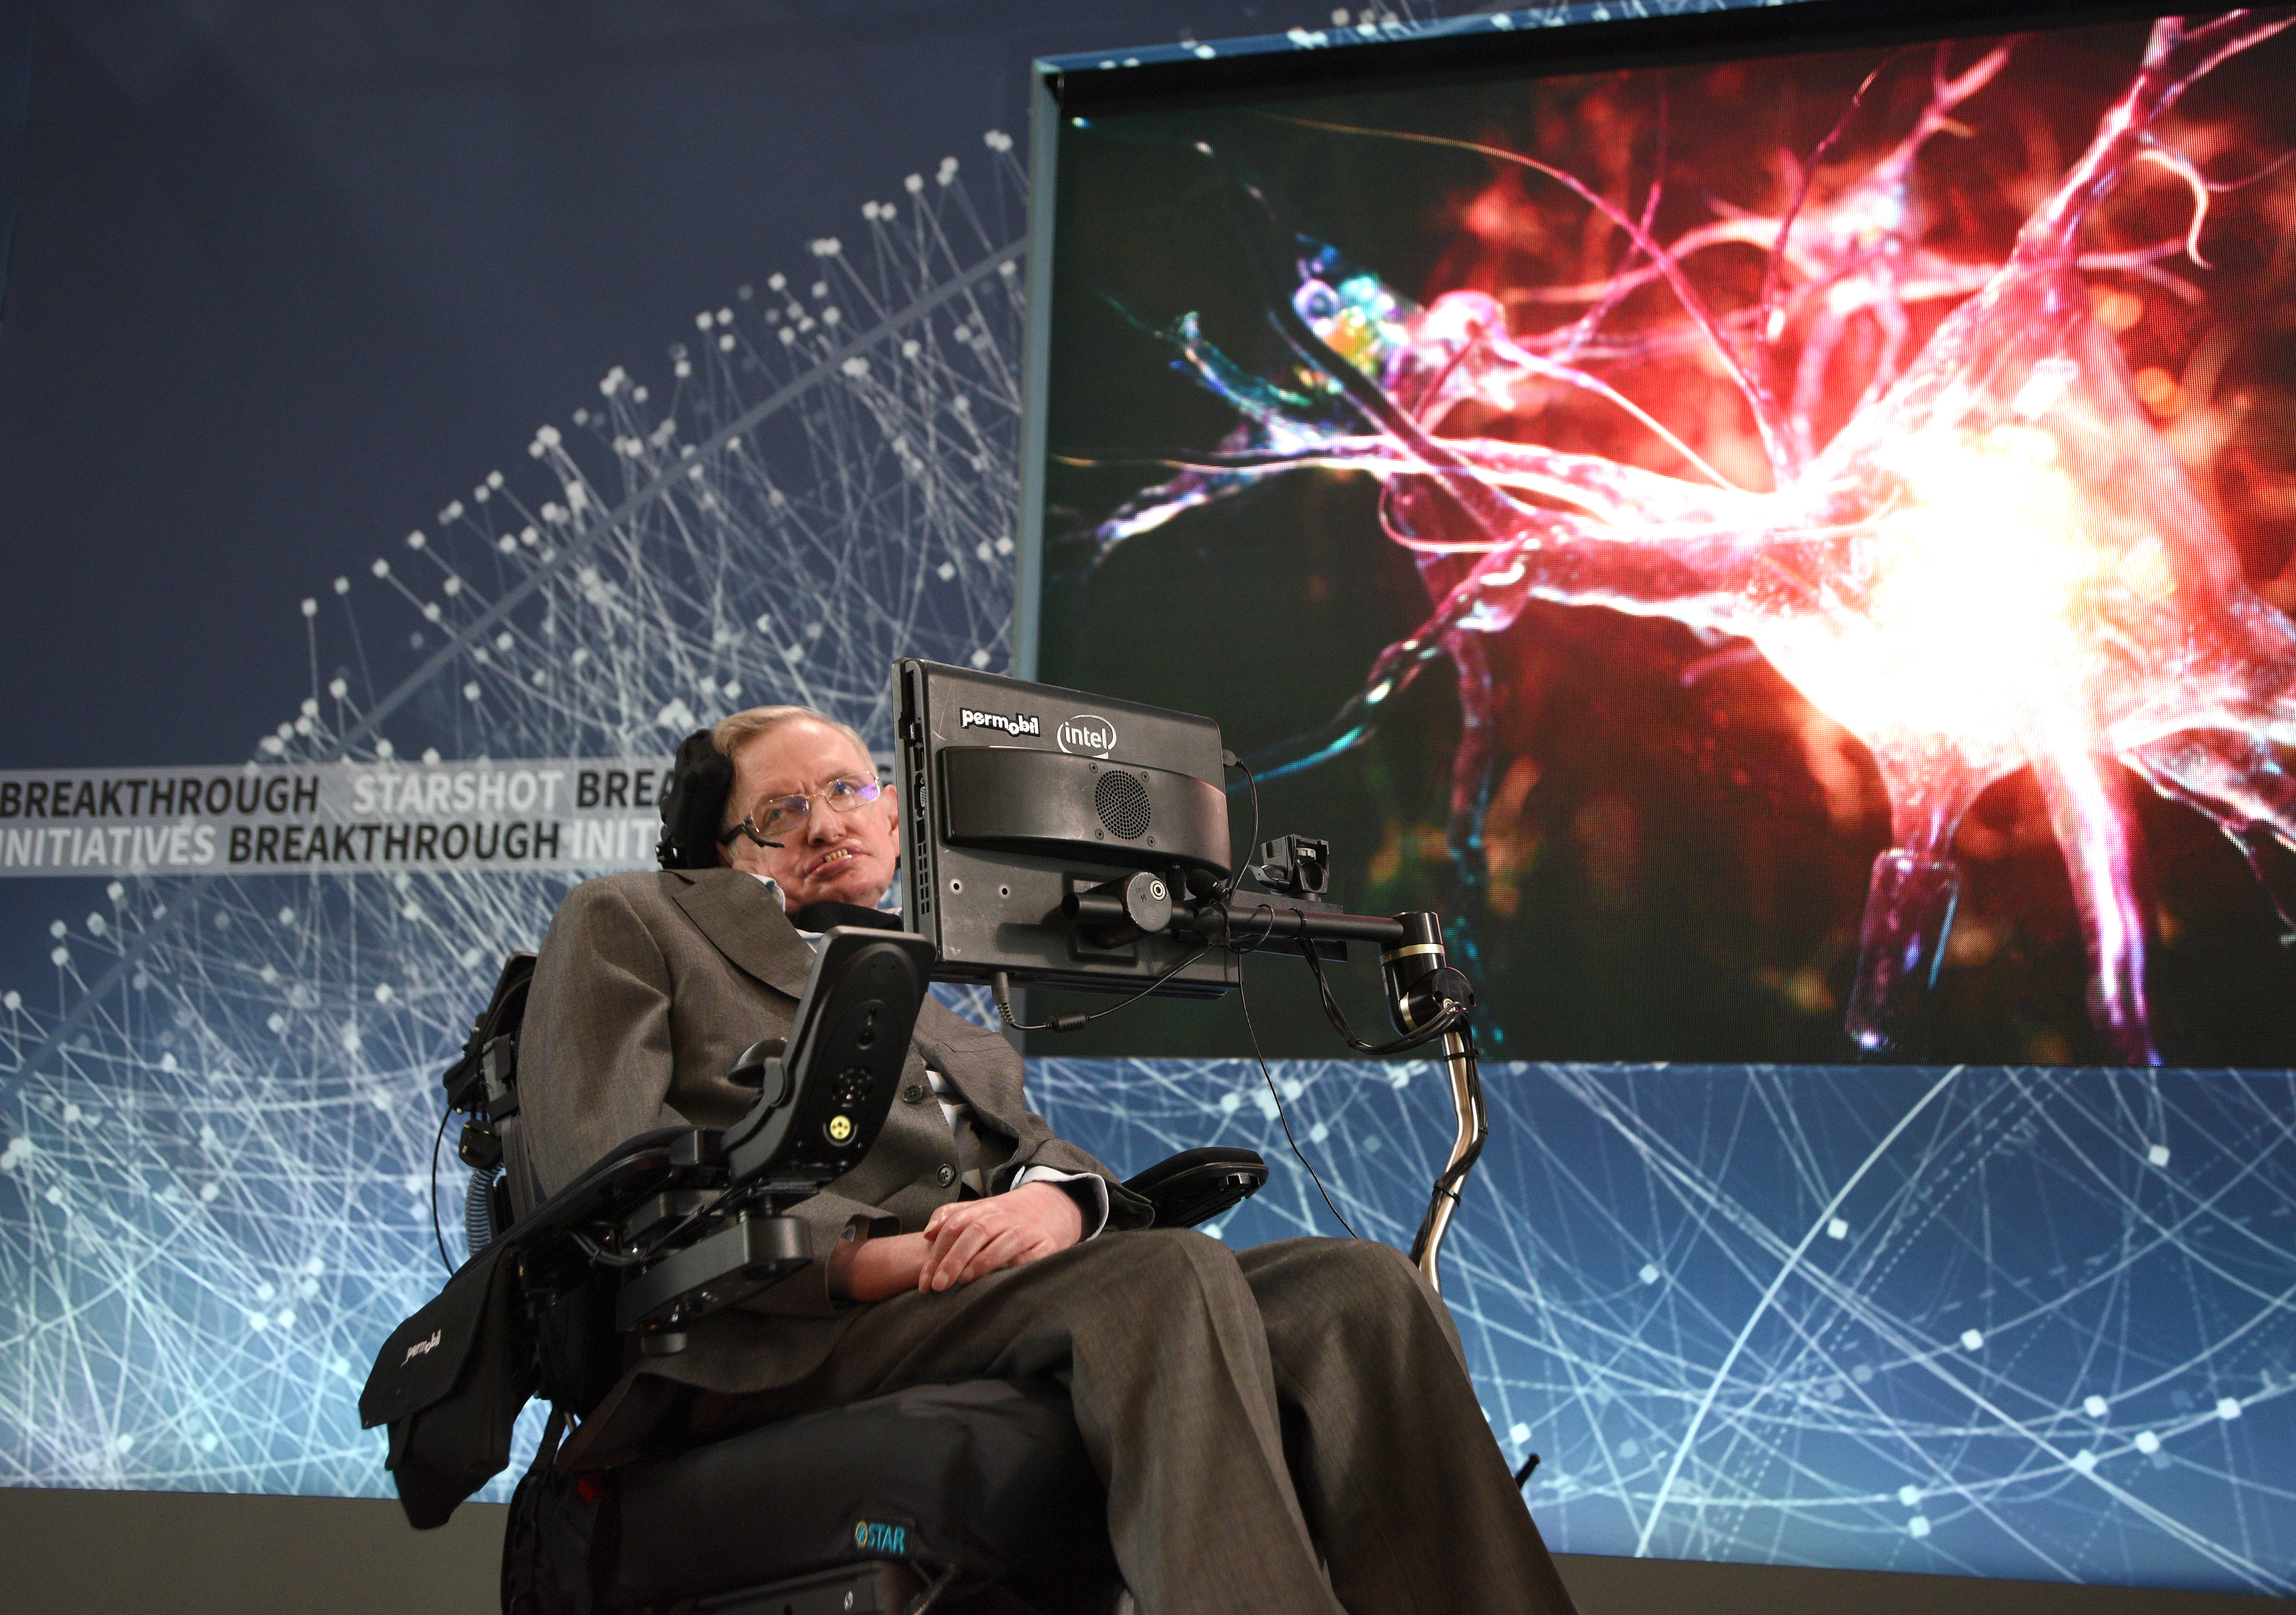 Stephen Hawking's last paper to demonstrate test for existence of parallel universes